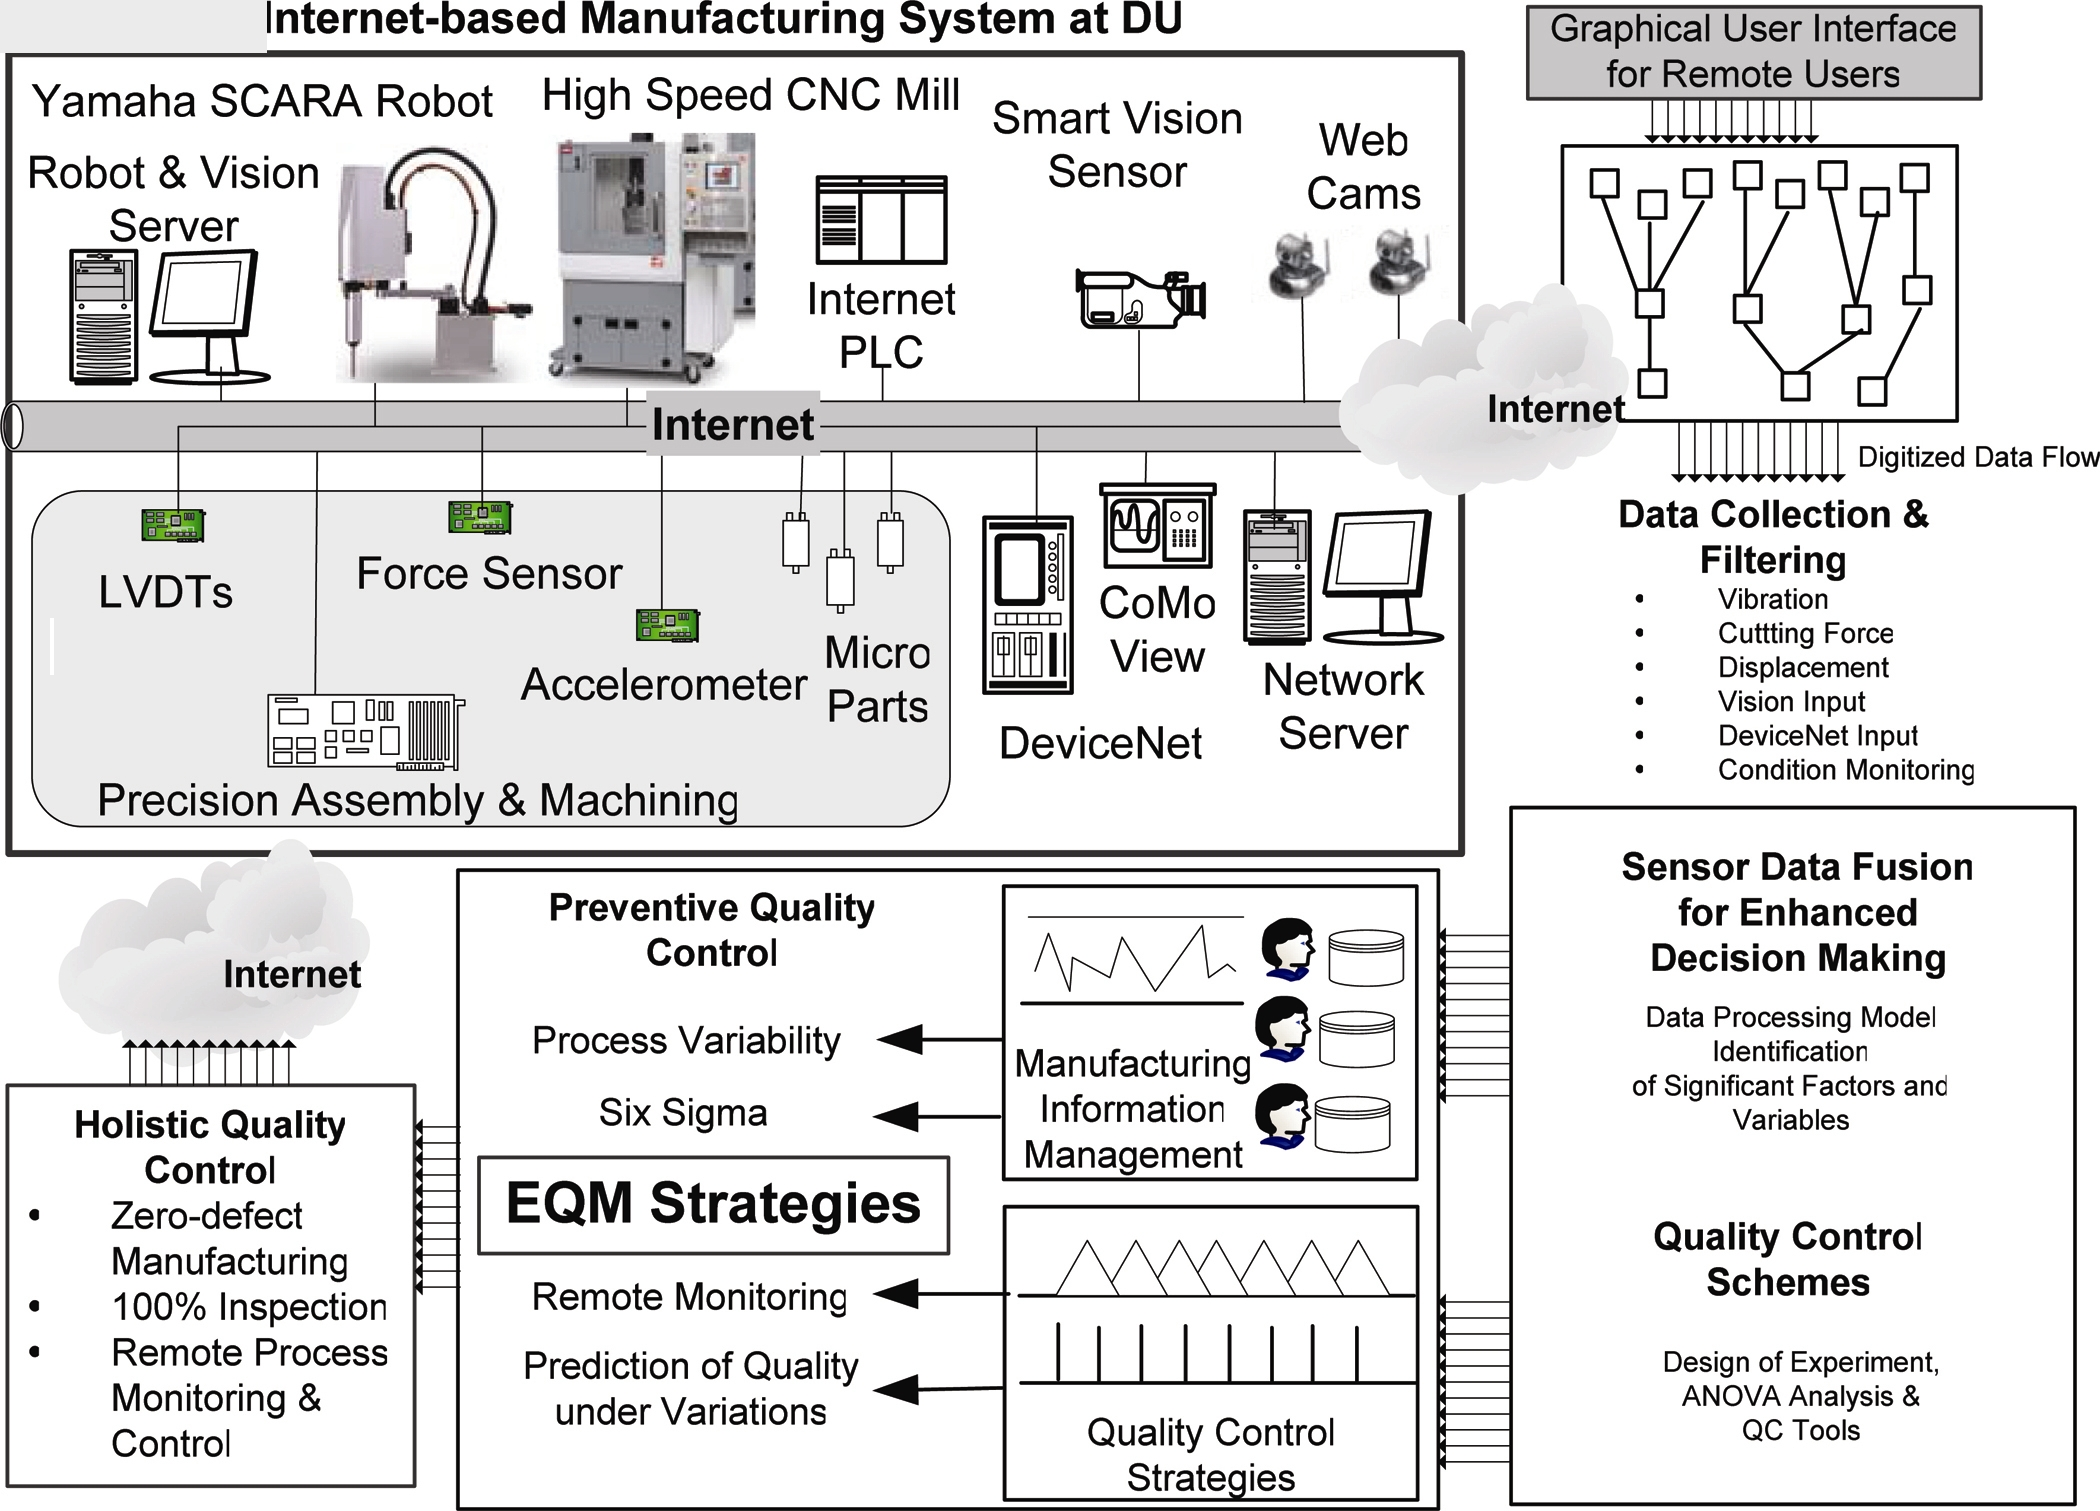 Quality Control In Network Based Production Environments